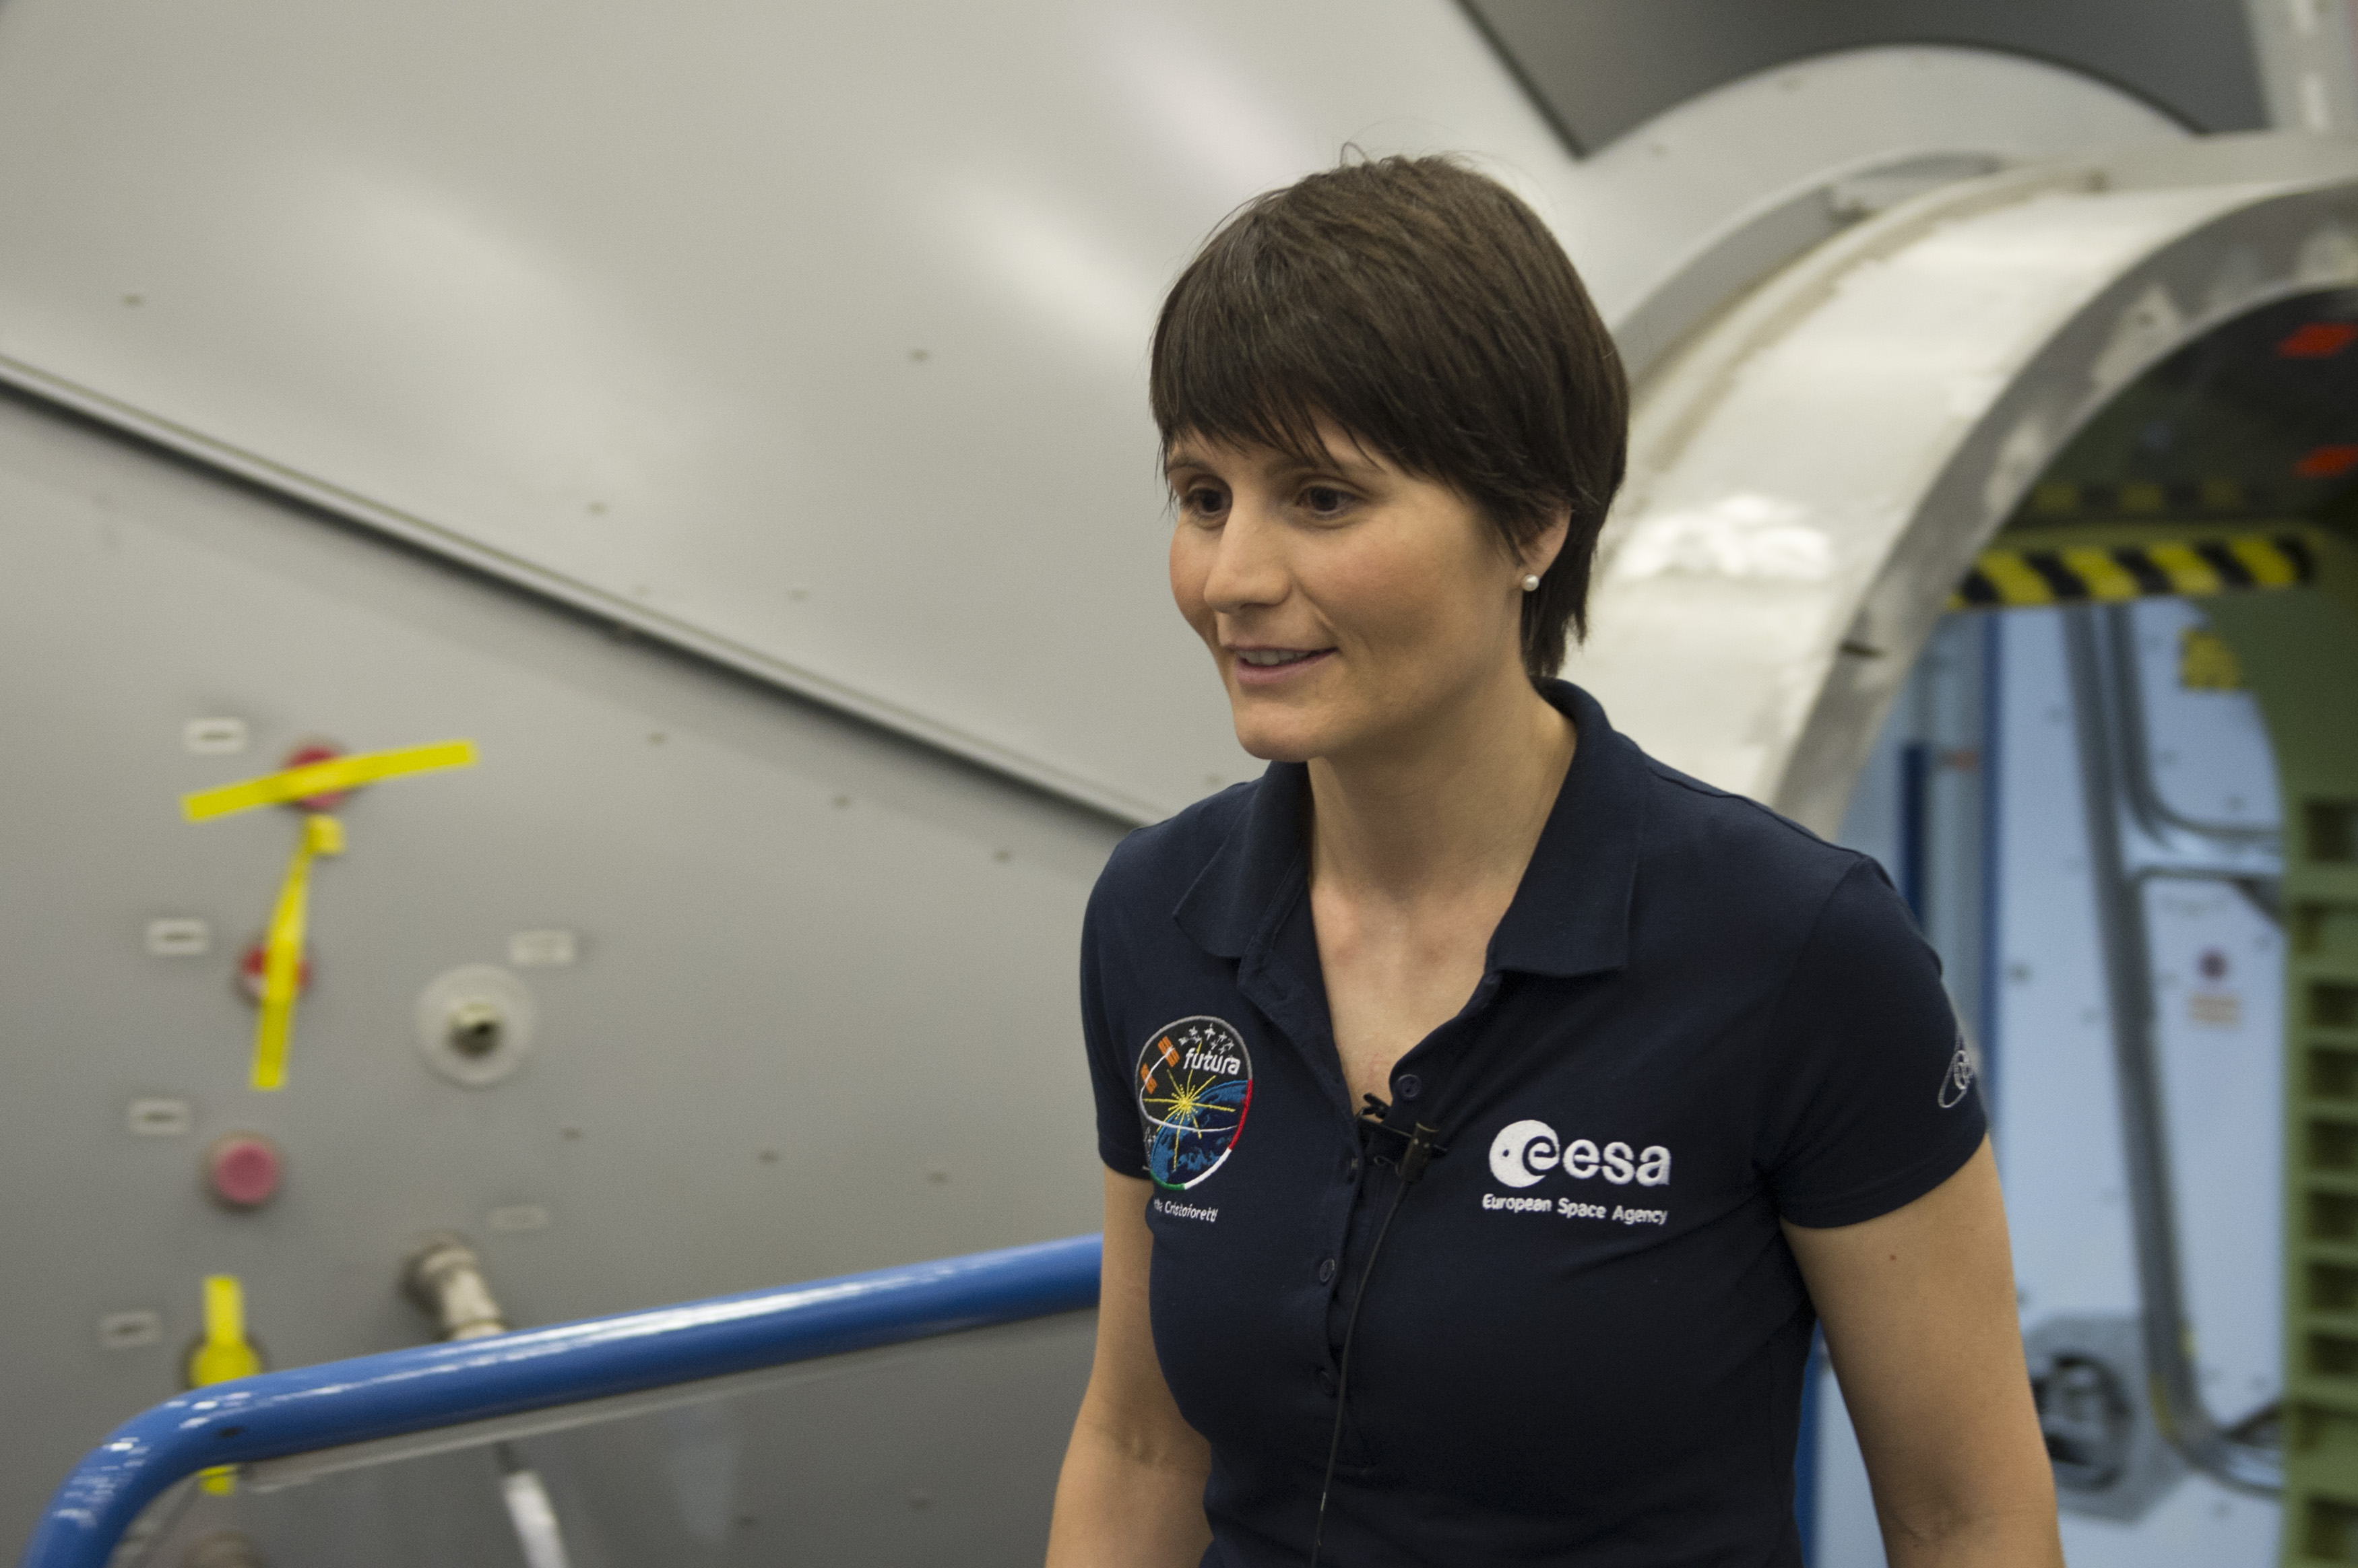 Training of ESA astronaut Samantha Cristoforetti at NASA JSC fac